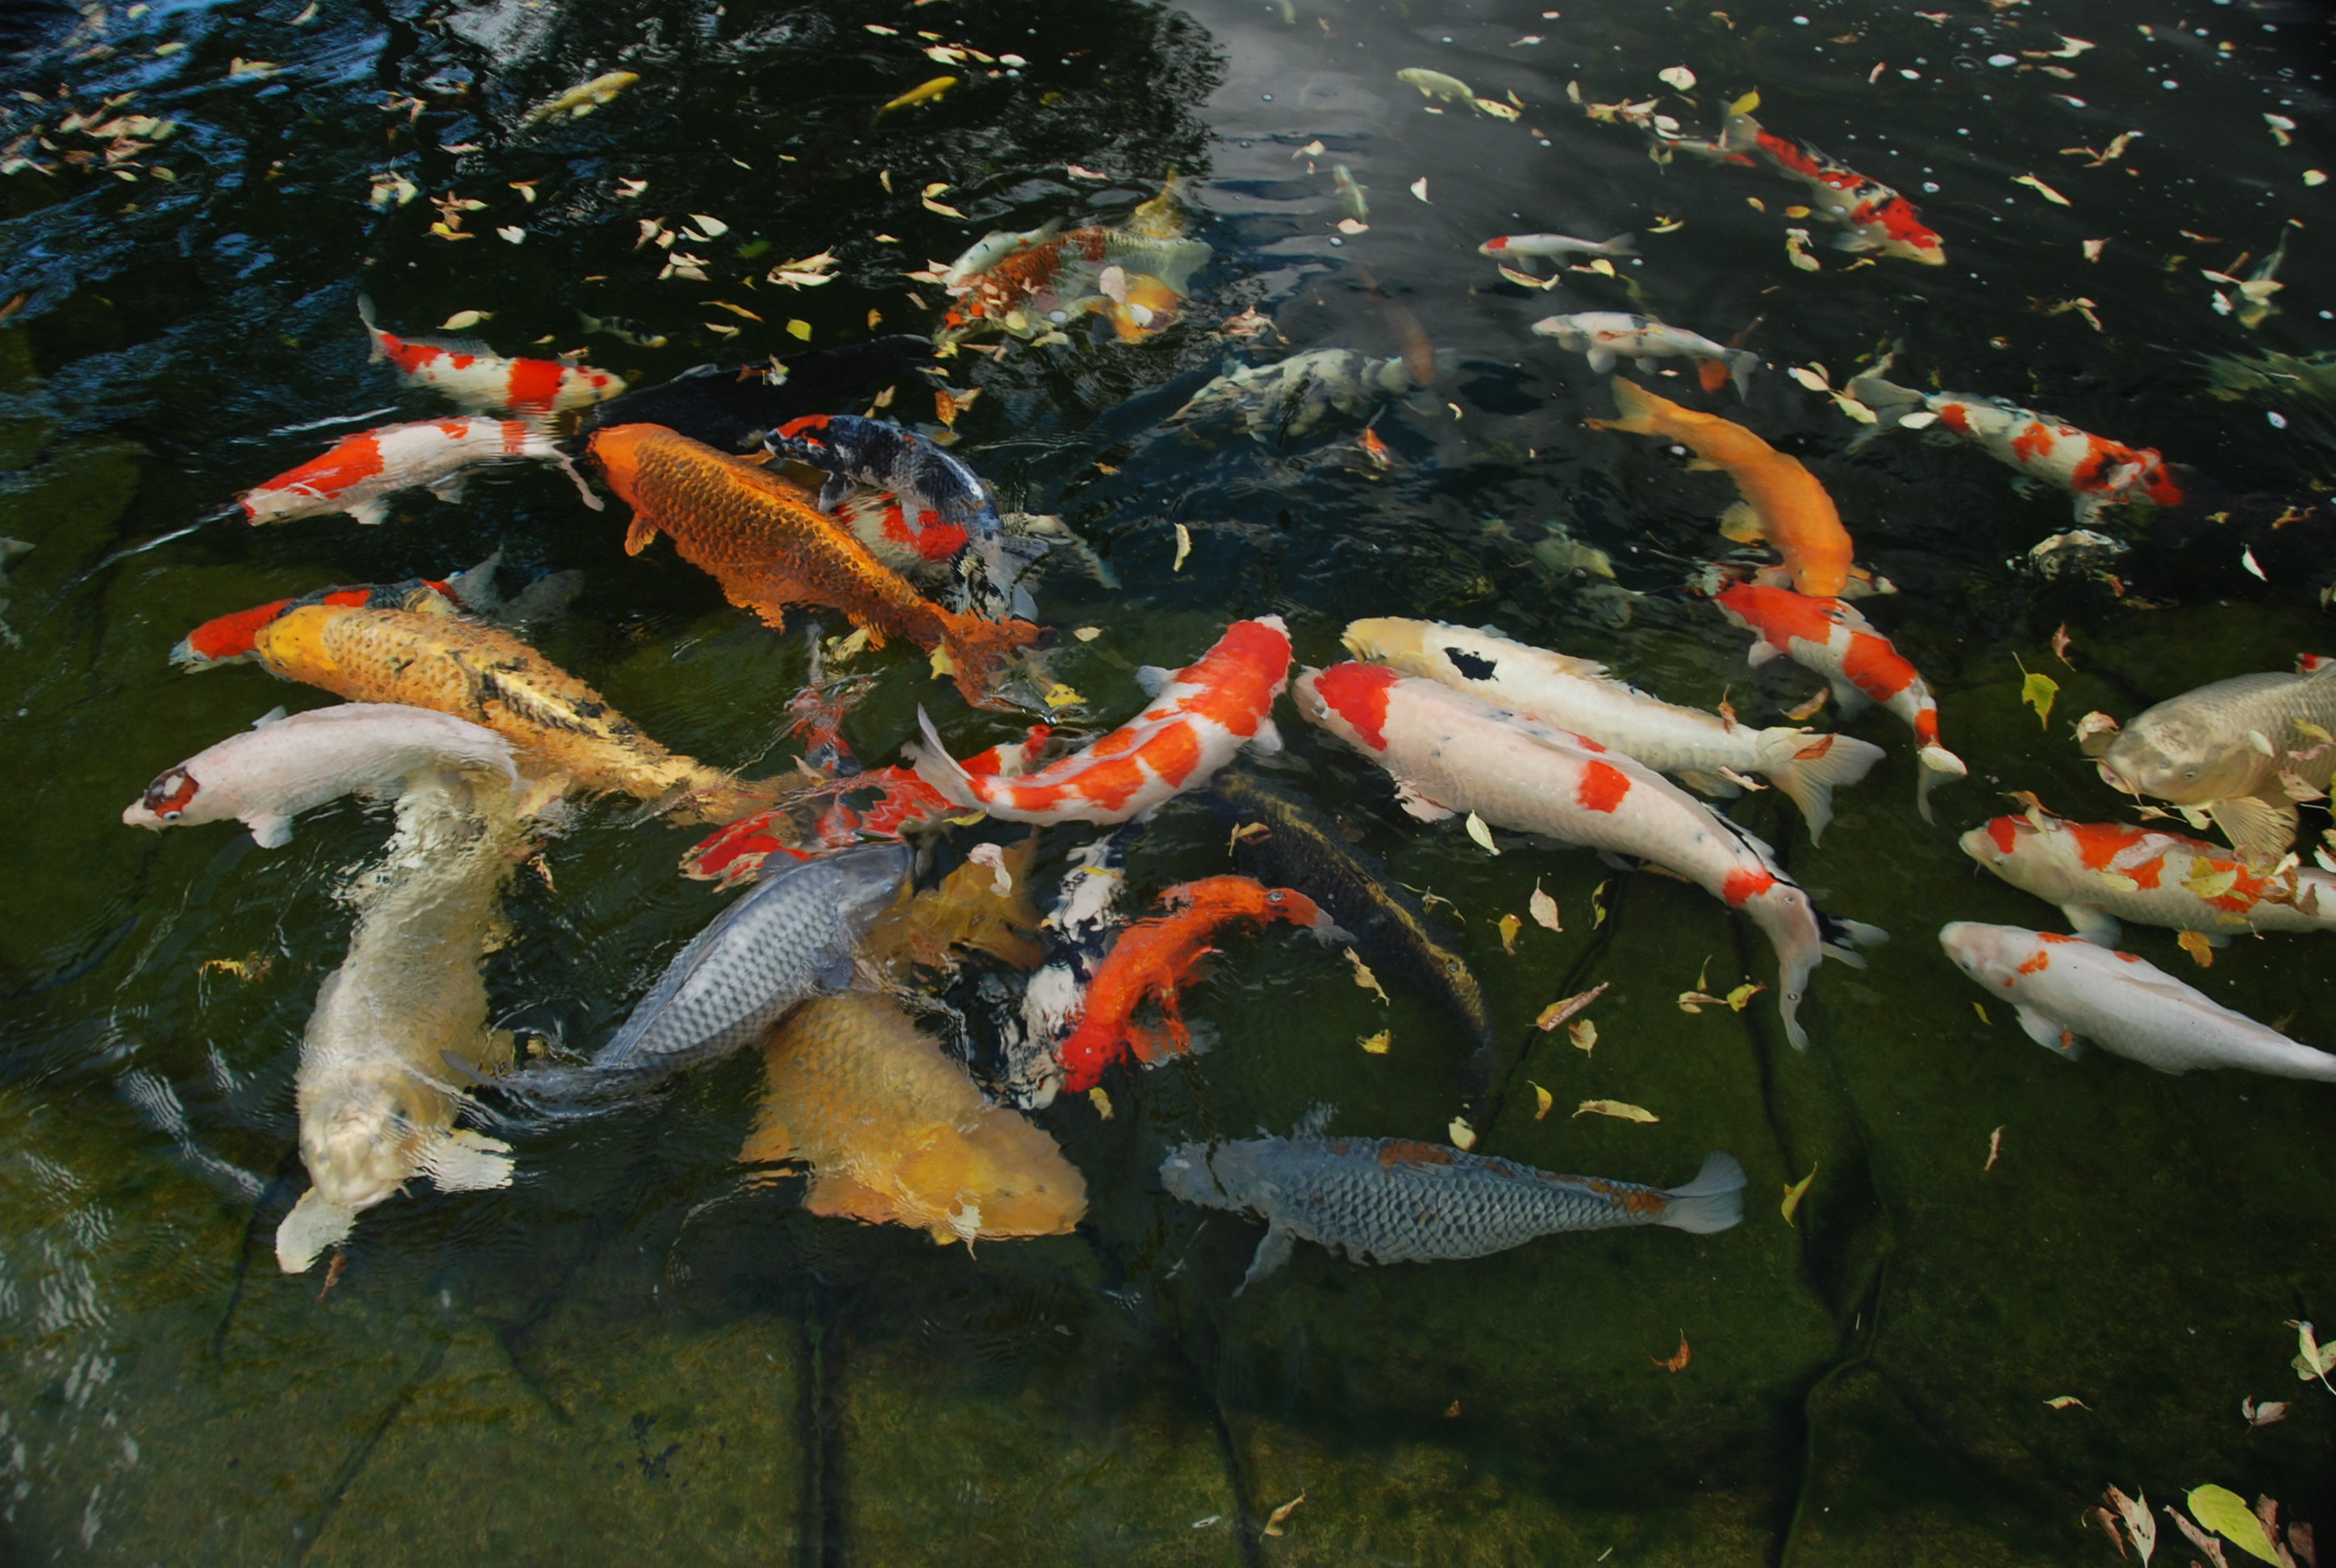 Koi acres imported japanese koi online shopping for koi for Best food for koi fish